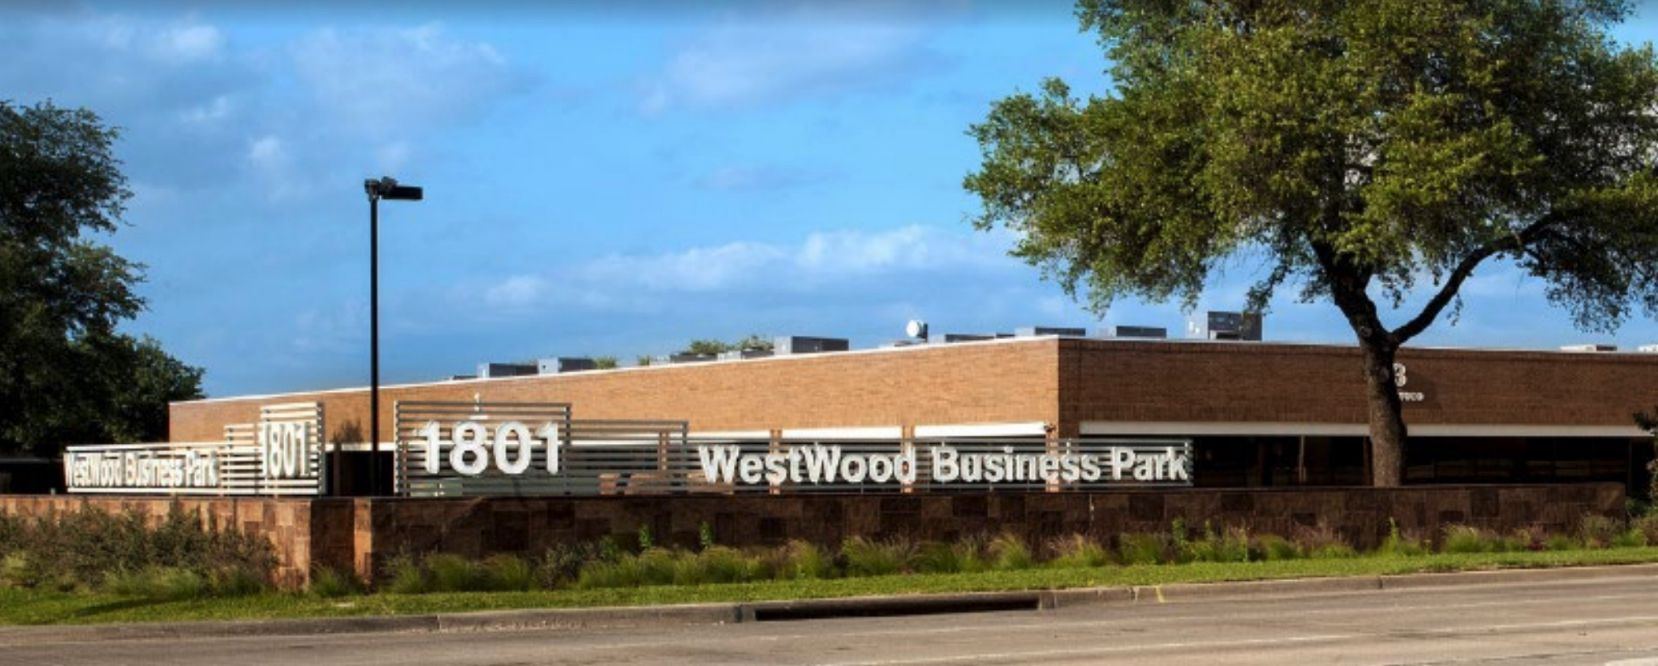 Finial Group bought the WestWood Business Park in Farmers Branch.